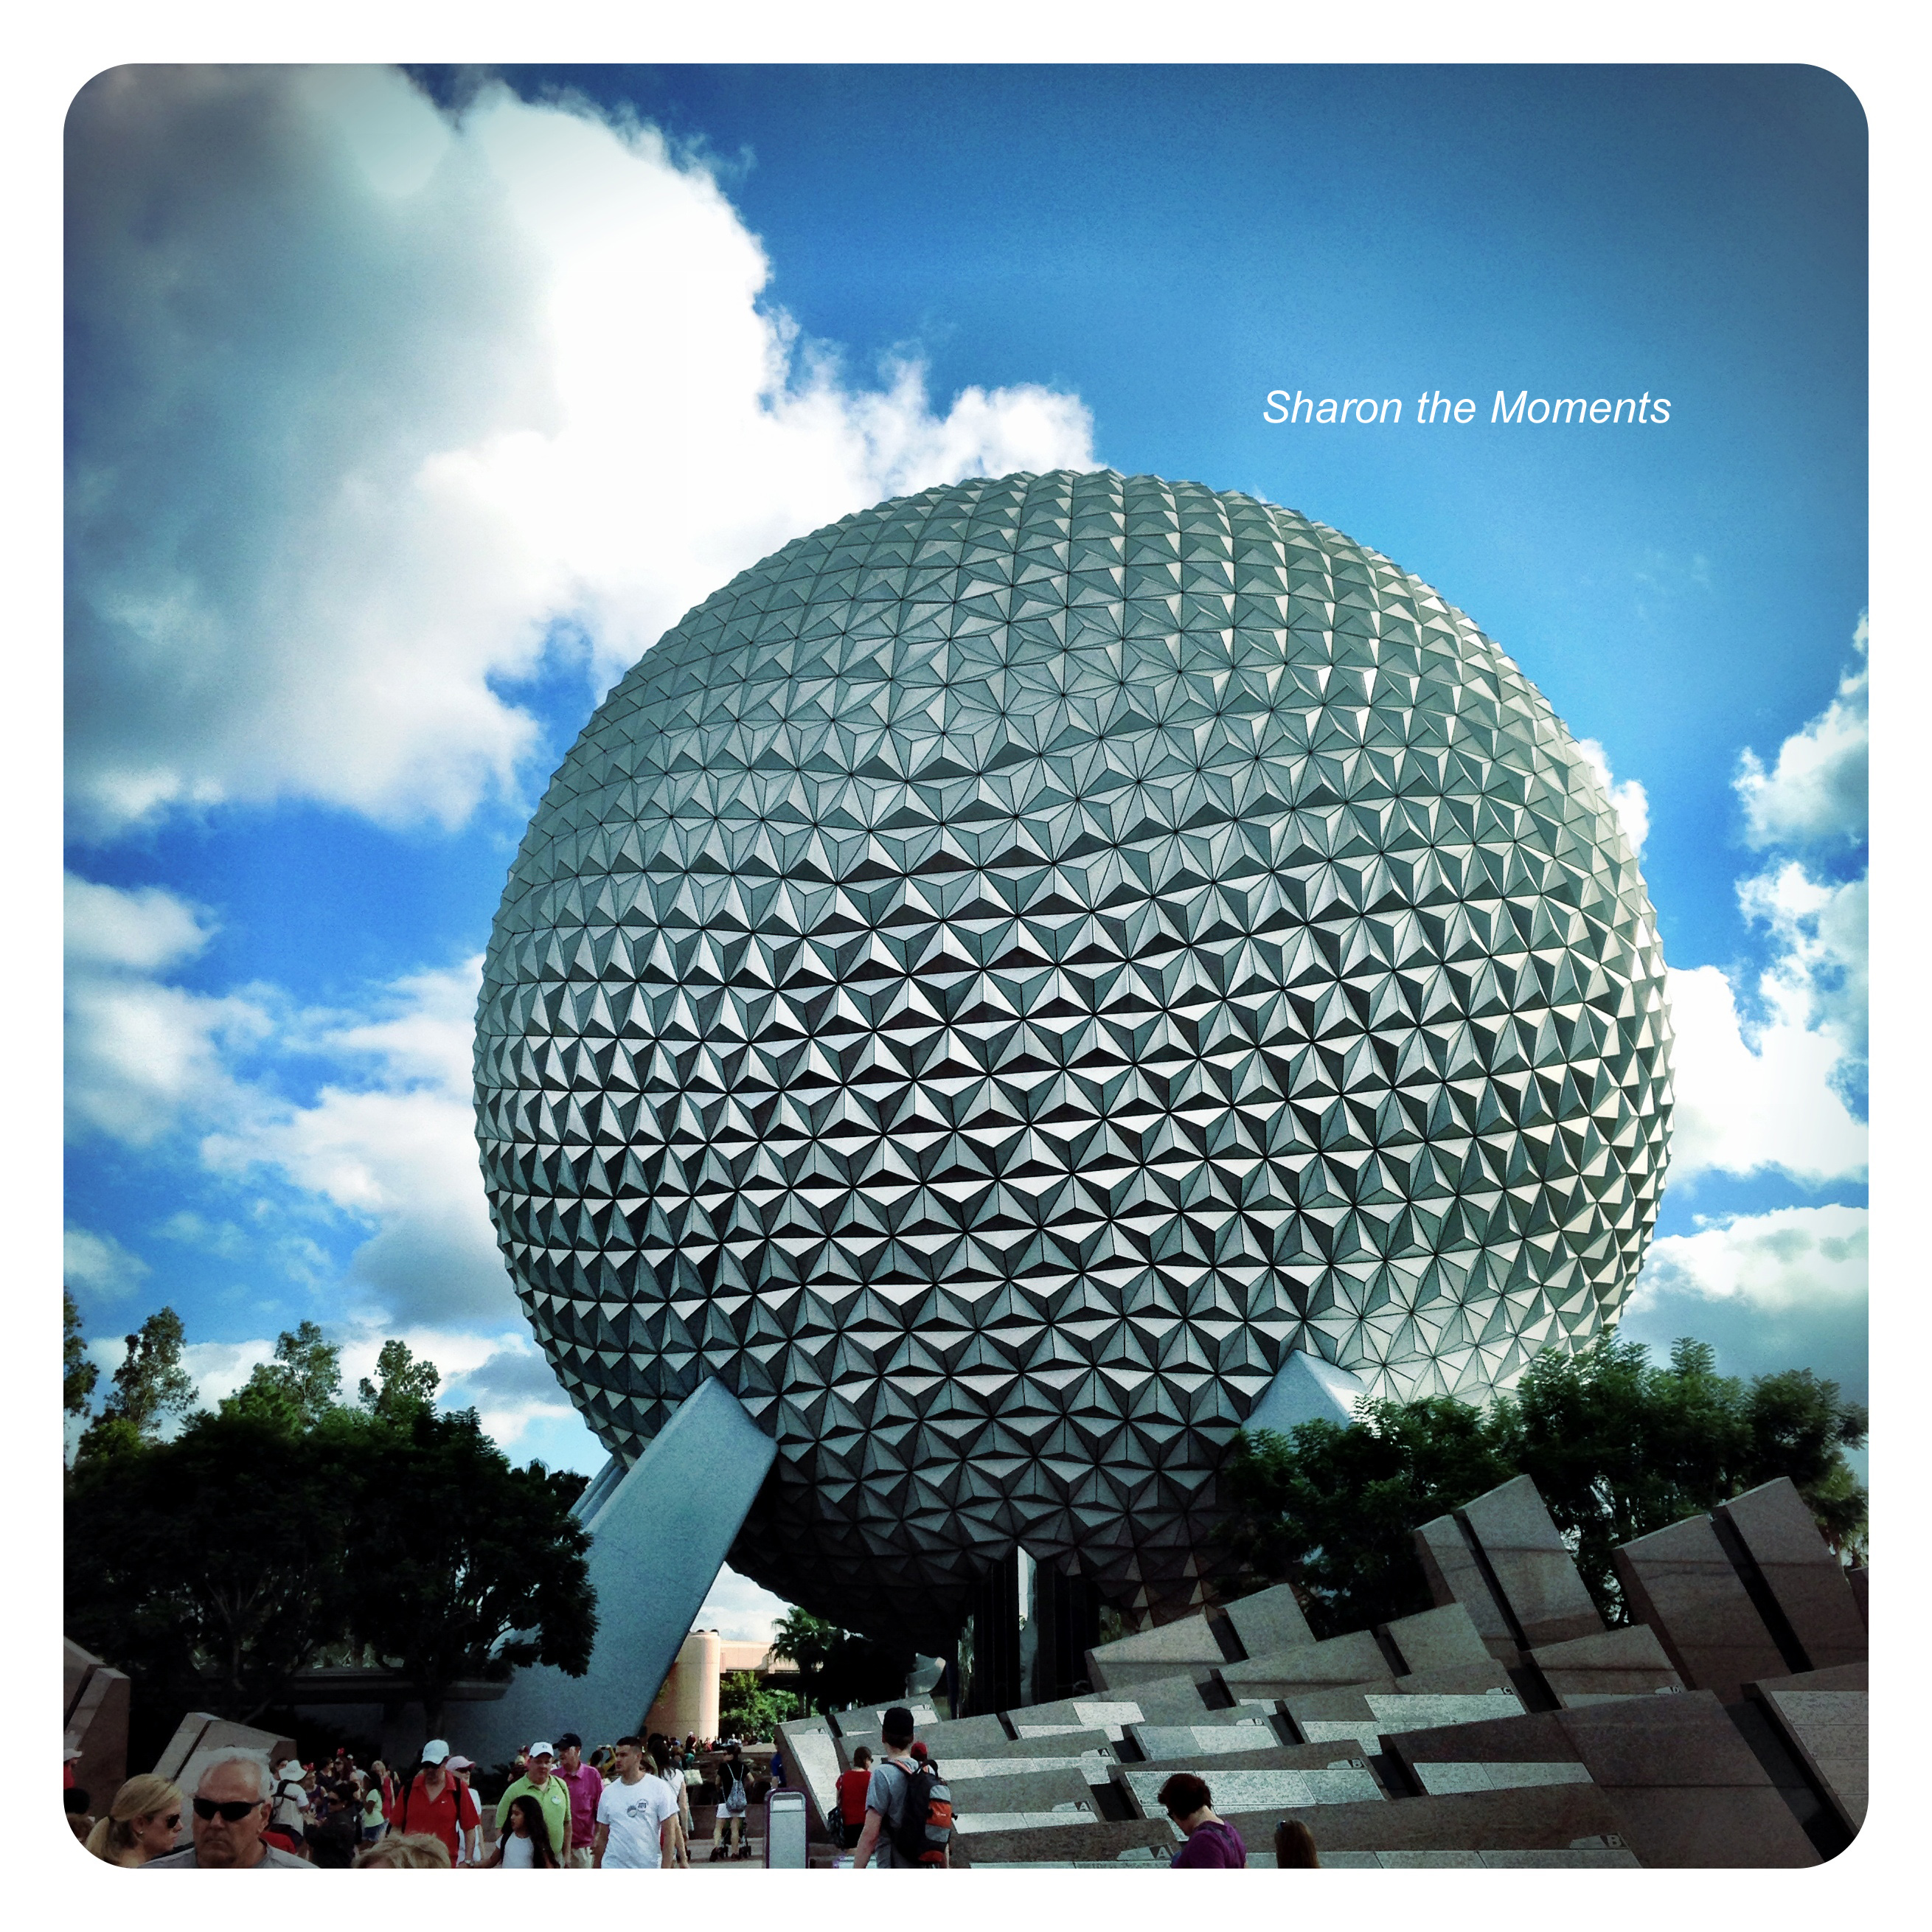 Our October Visit to Walt Disney World Epcot|Sharon the Moments Blog